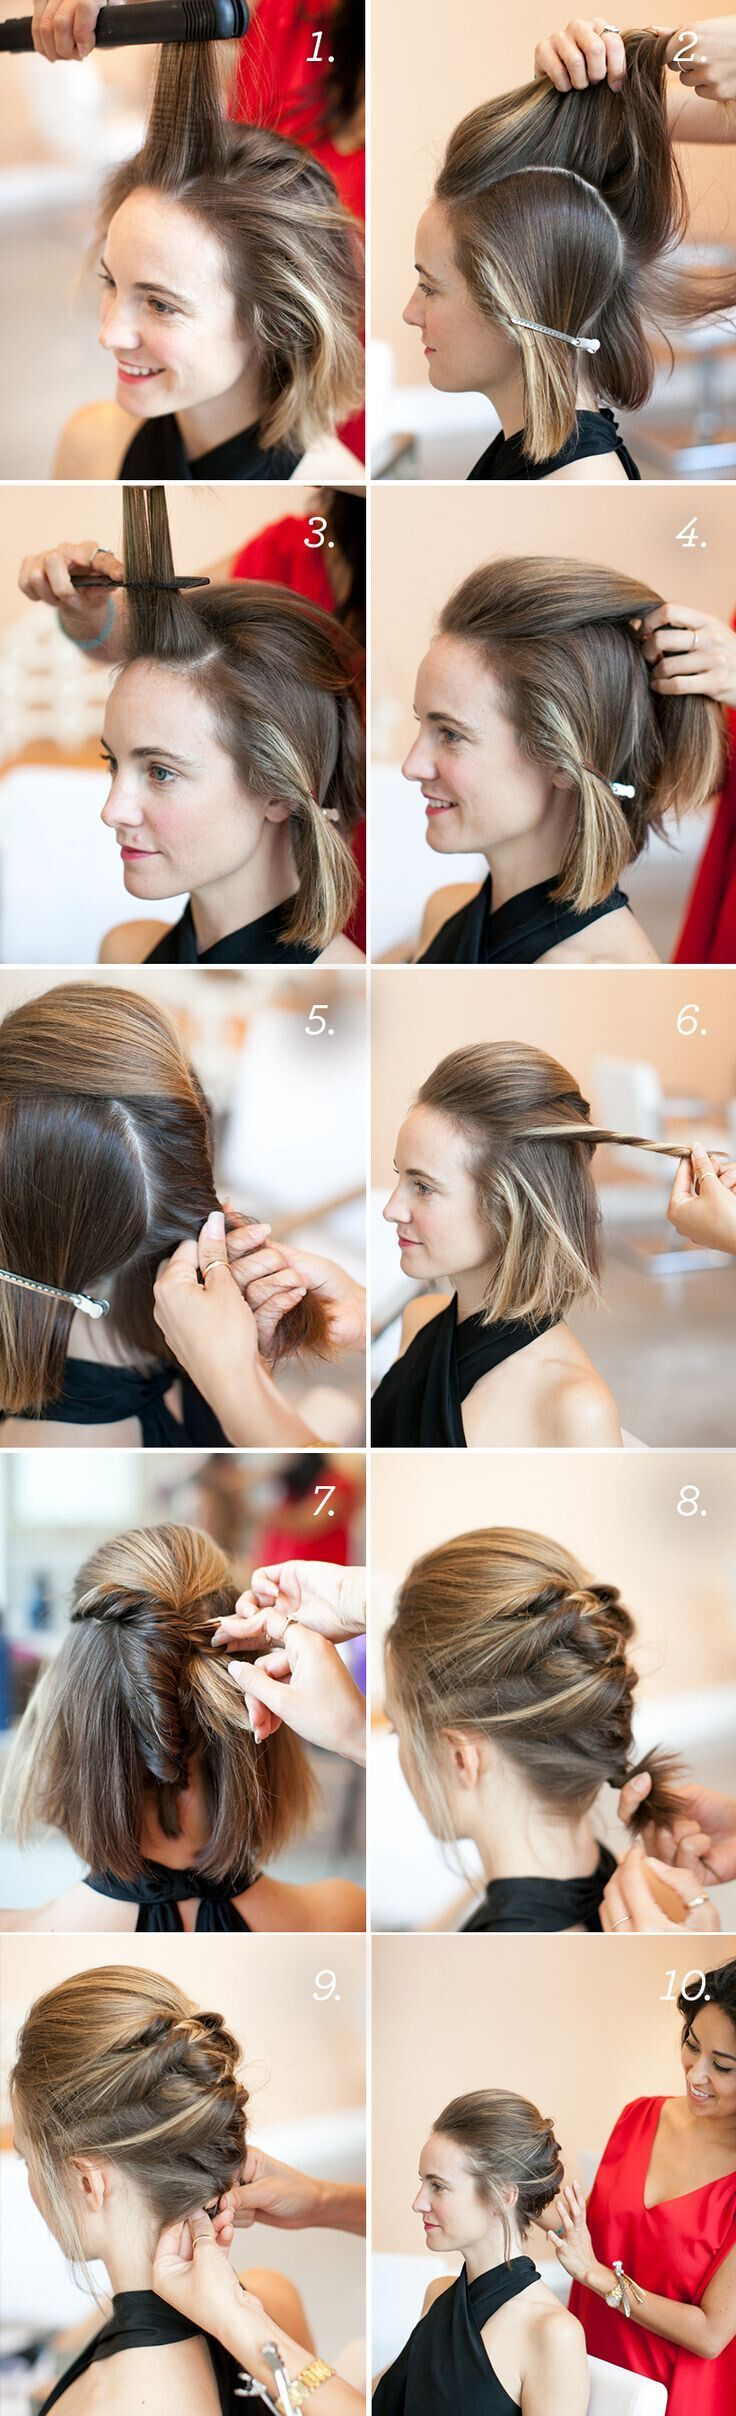 Textured French Twist Style With Bob Short Updo Hairstyle Tutorial Prom Hairstyles For Short Hair Short Hair Updo Hair Lengths